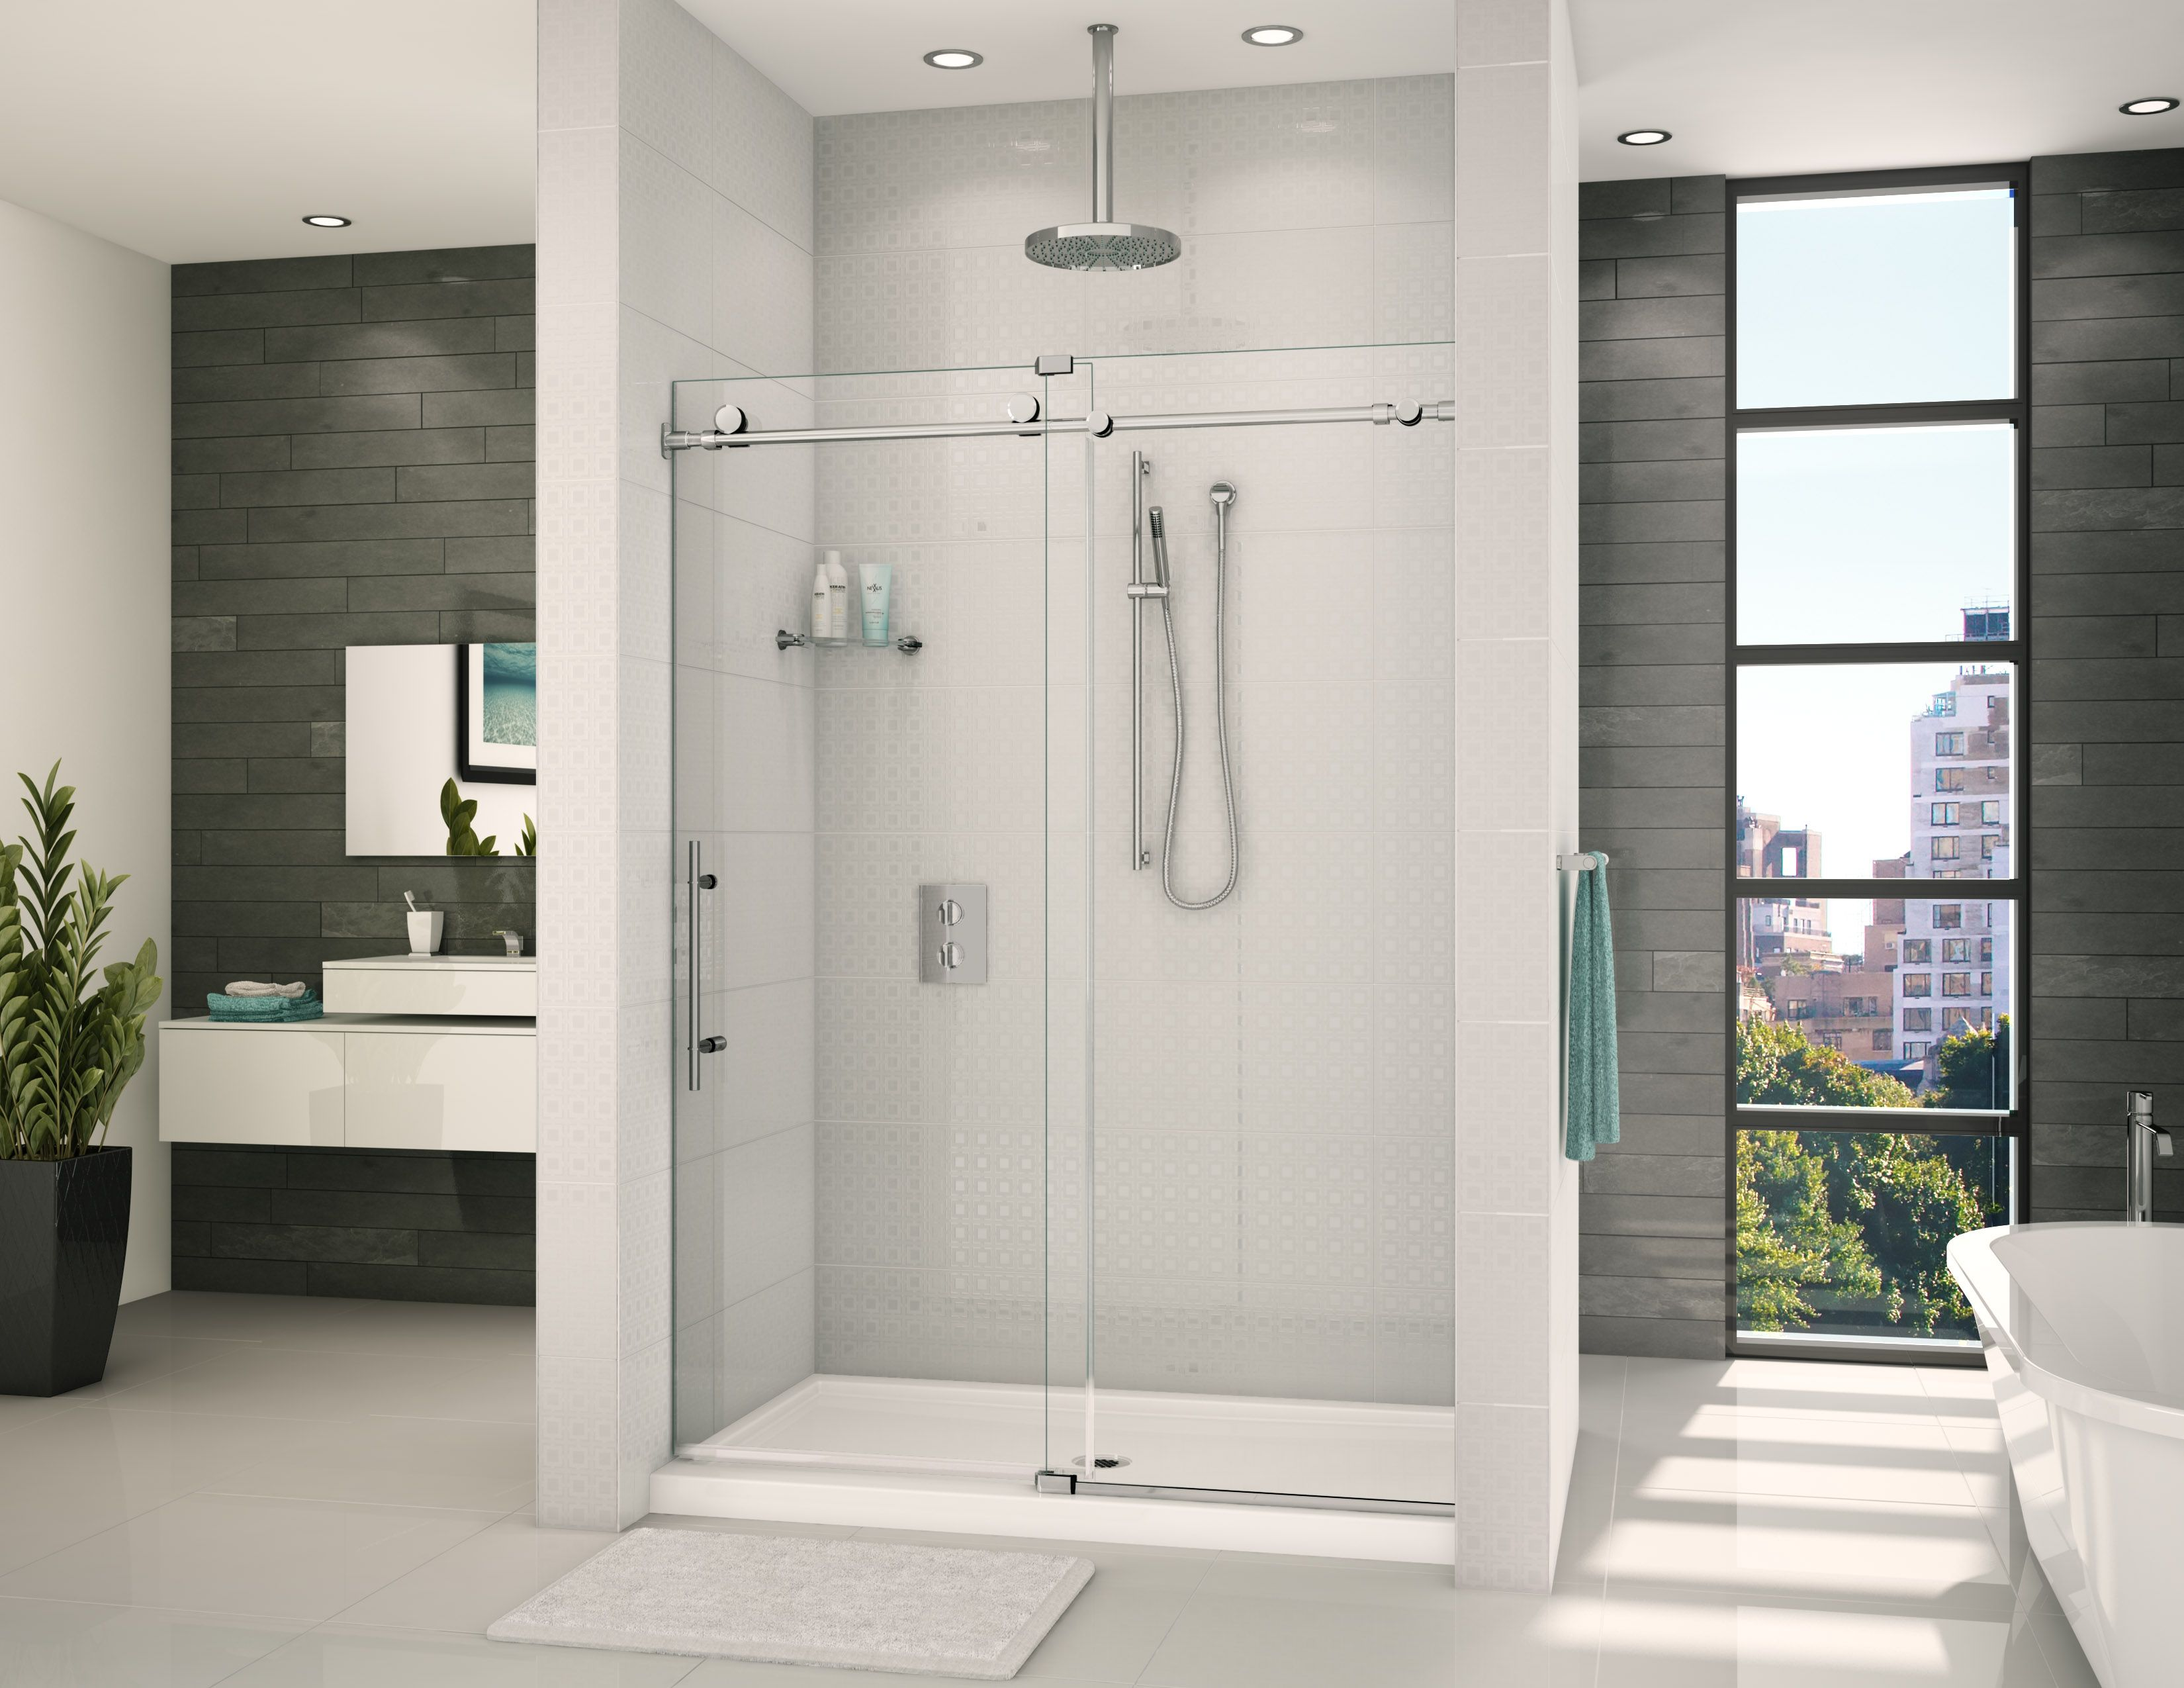 Glass Bathroom Ideas: Graceful White Bathroom With In-line Shower Door By